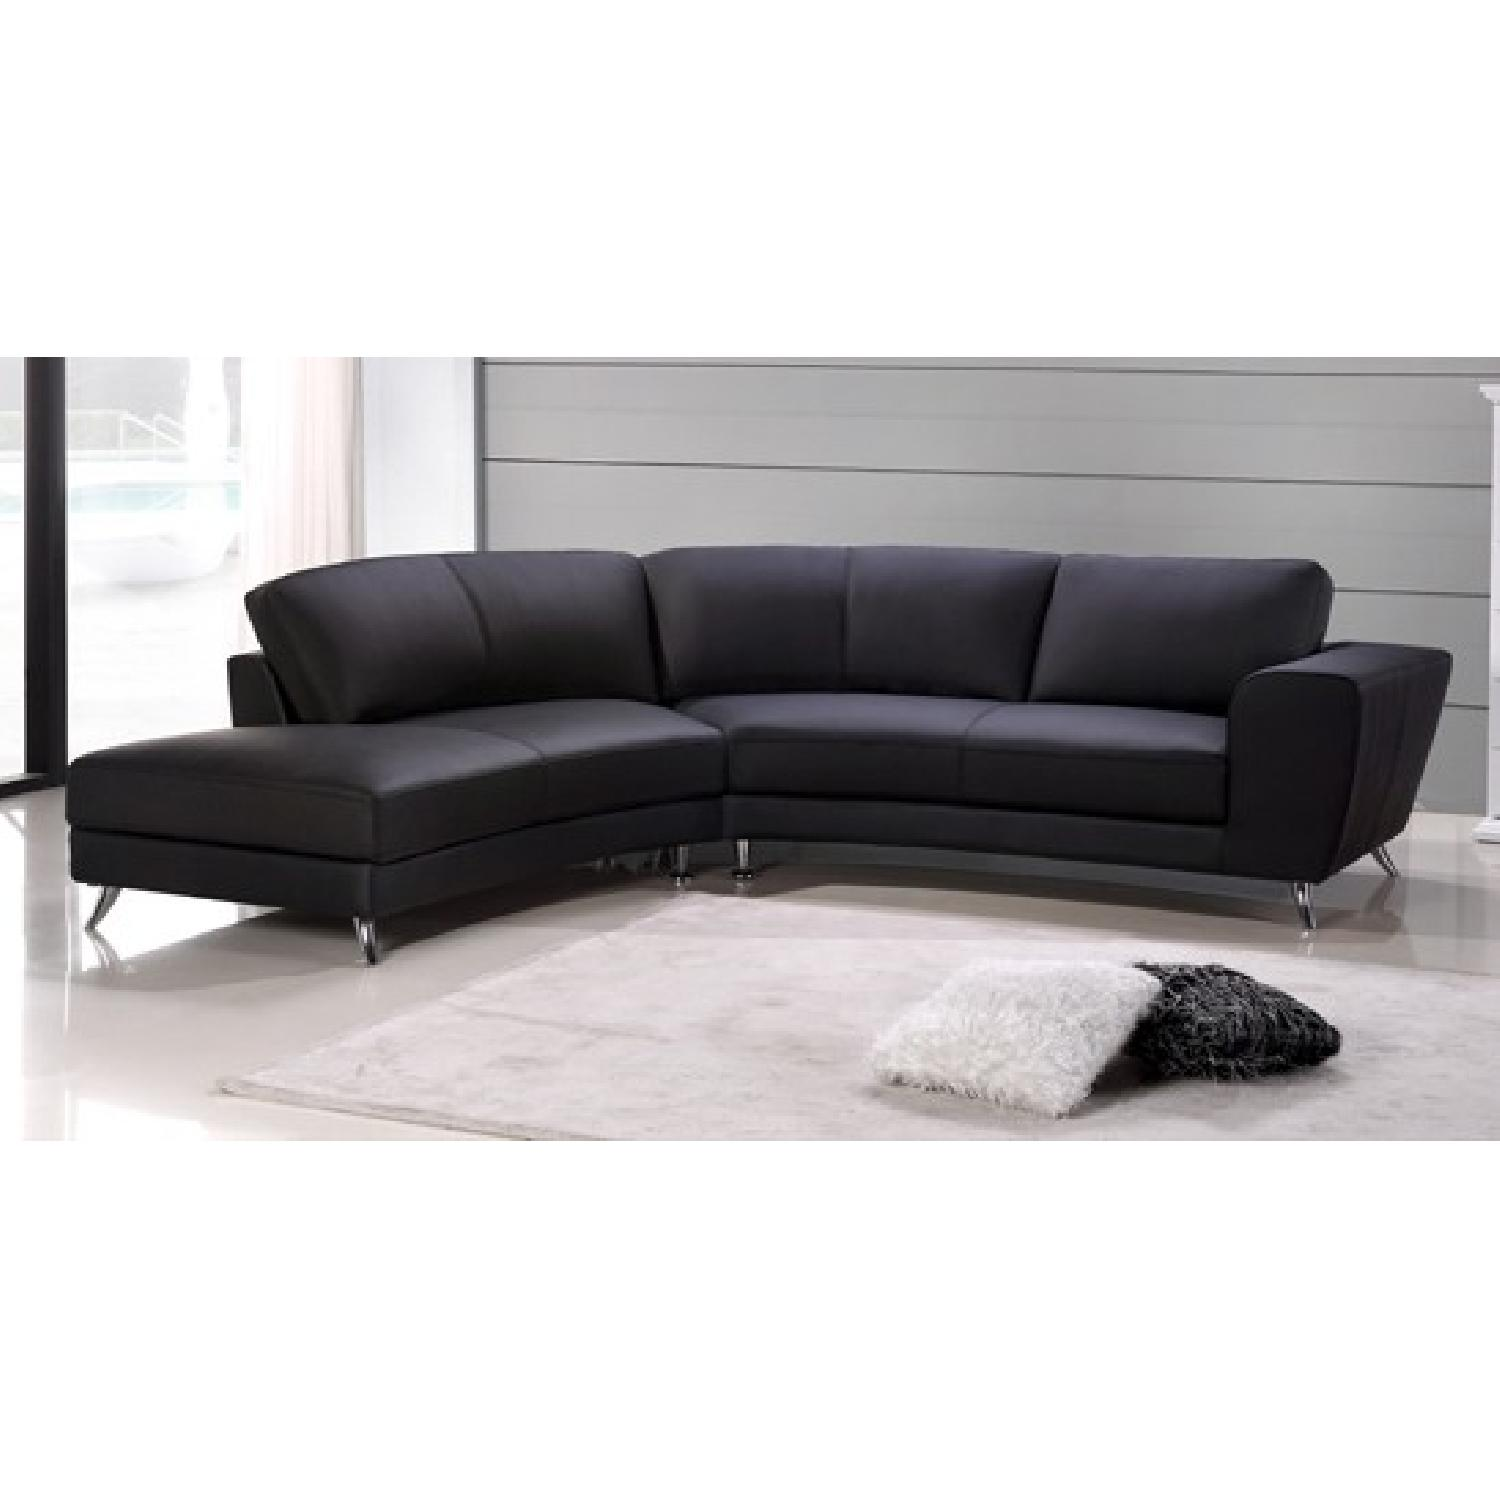 Contemporary Sectional Sofa In Black Top Grain Leather W Matching Faux Leather Chrome Legs